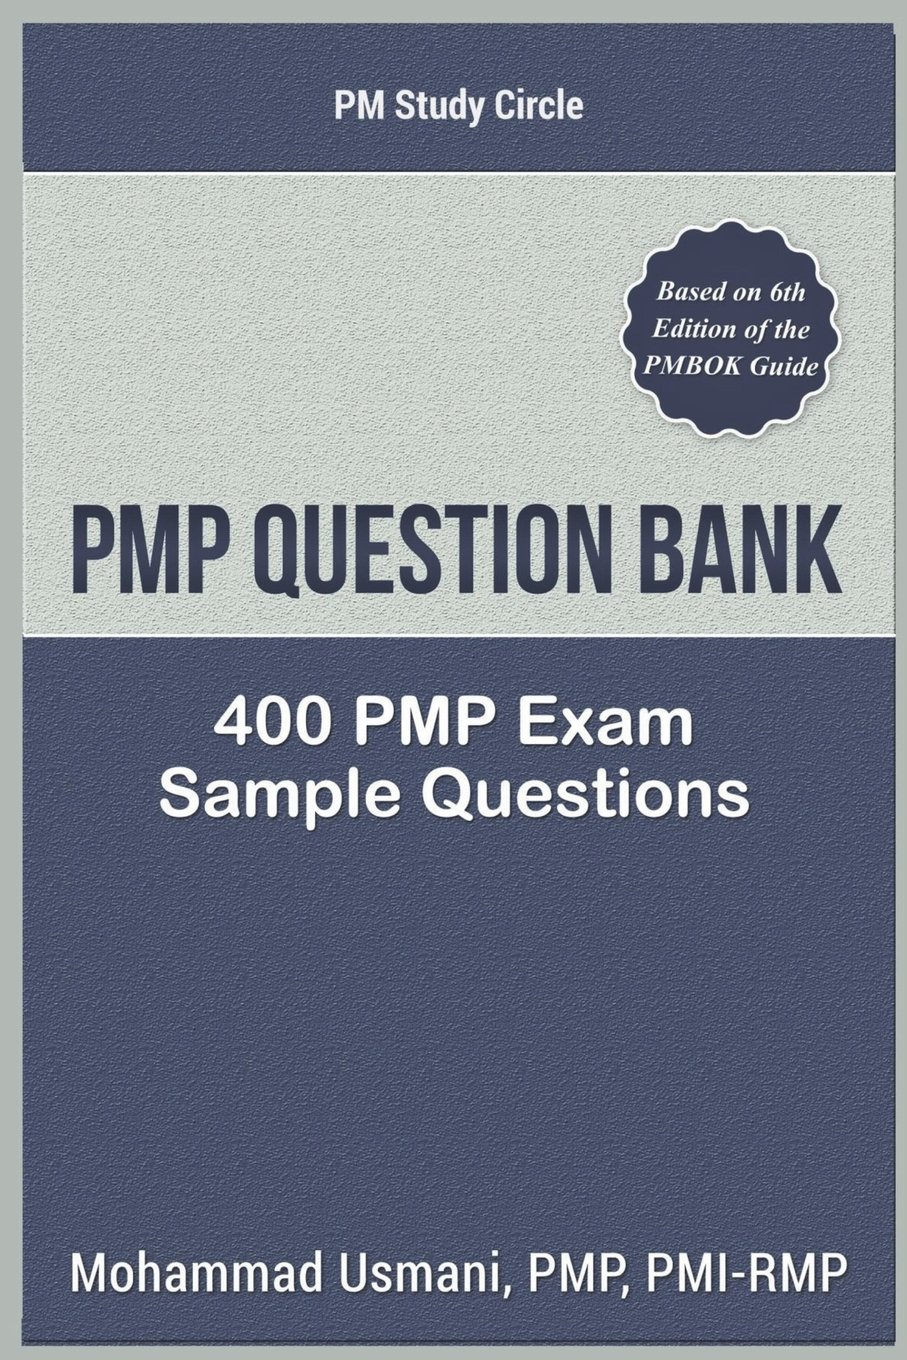 Buy Pmp Question Bank 400 Pmp Exam Sample Questions Book Online At